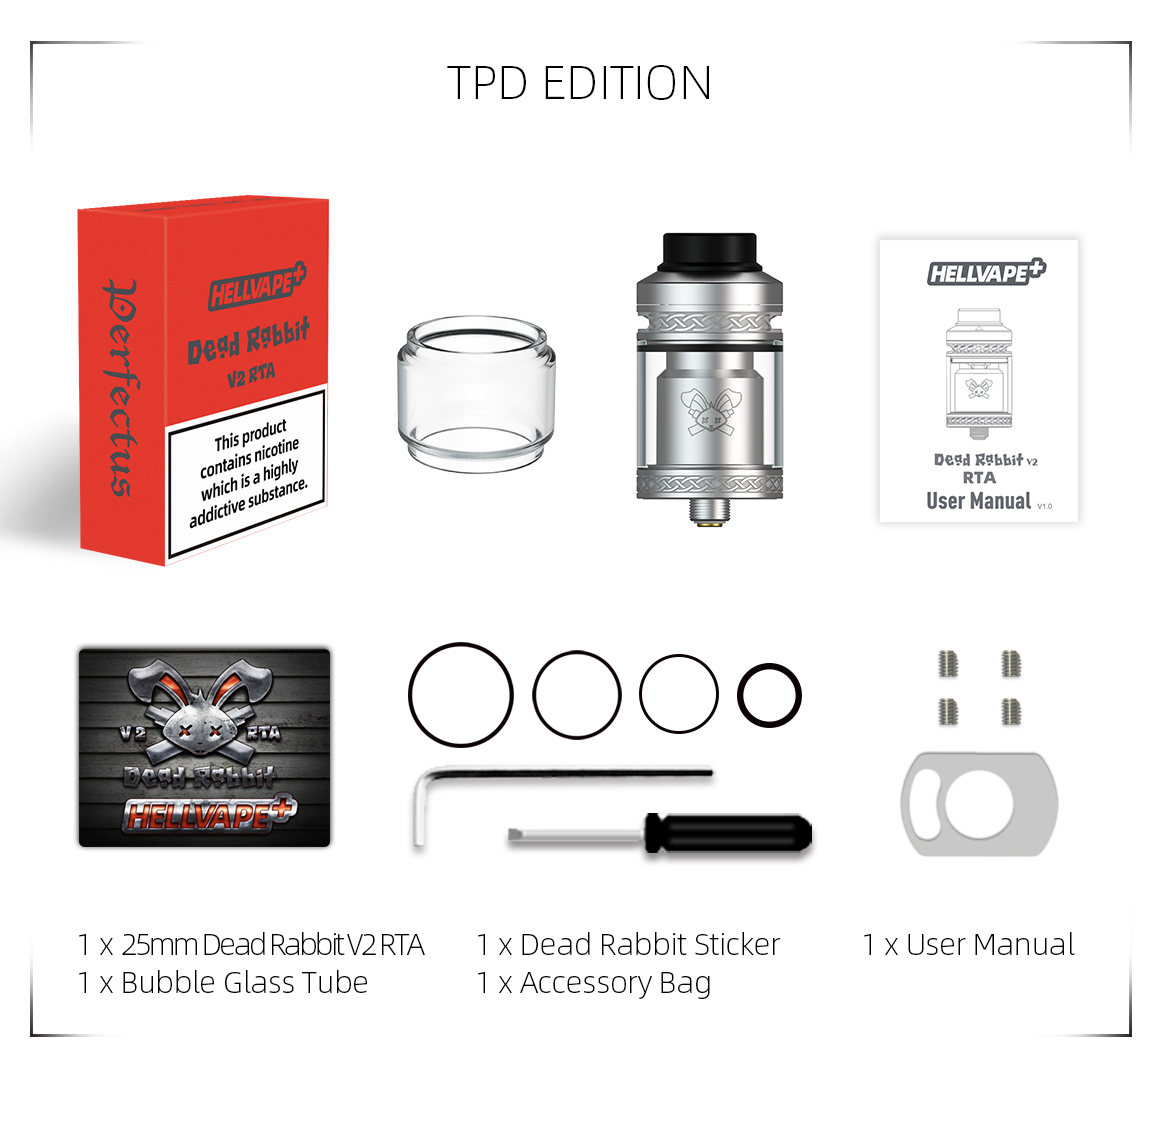 hellvape dead rabbit v2 rta - TPD package